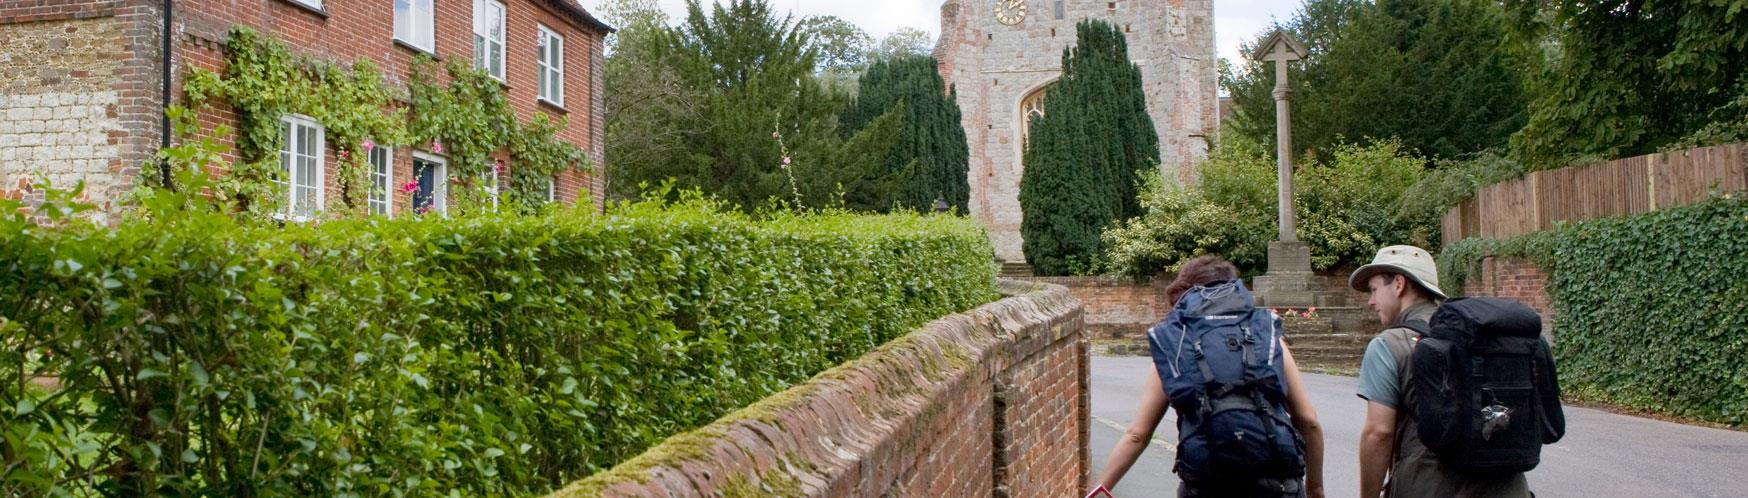 Walk the North Downs Way and pass through some beautiful villages